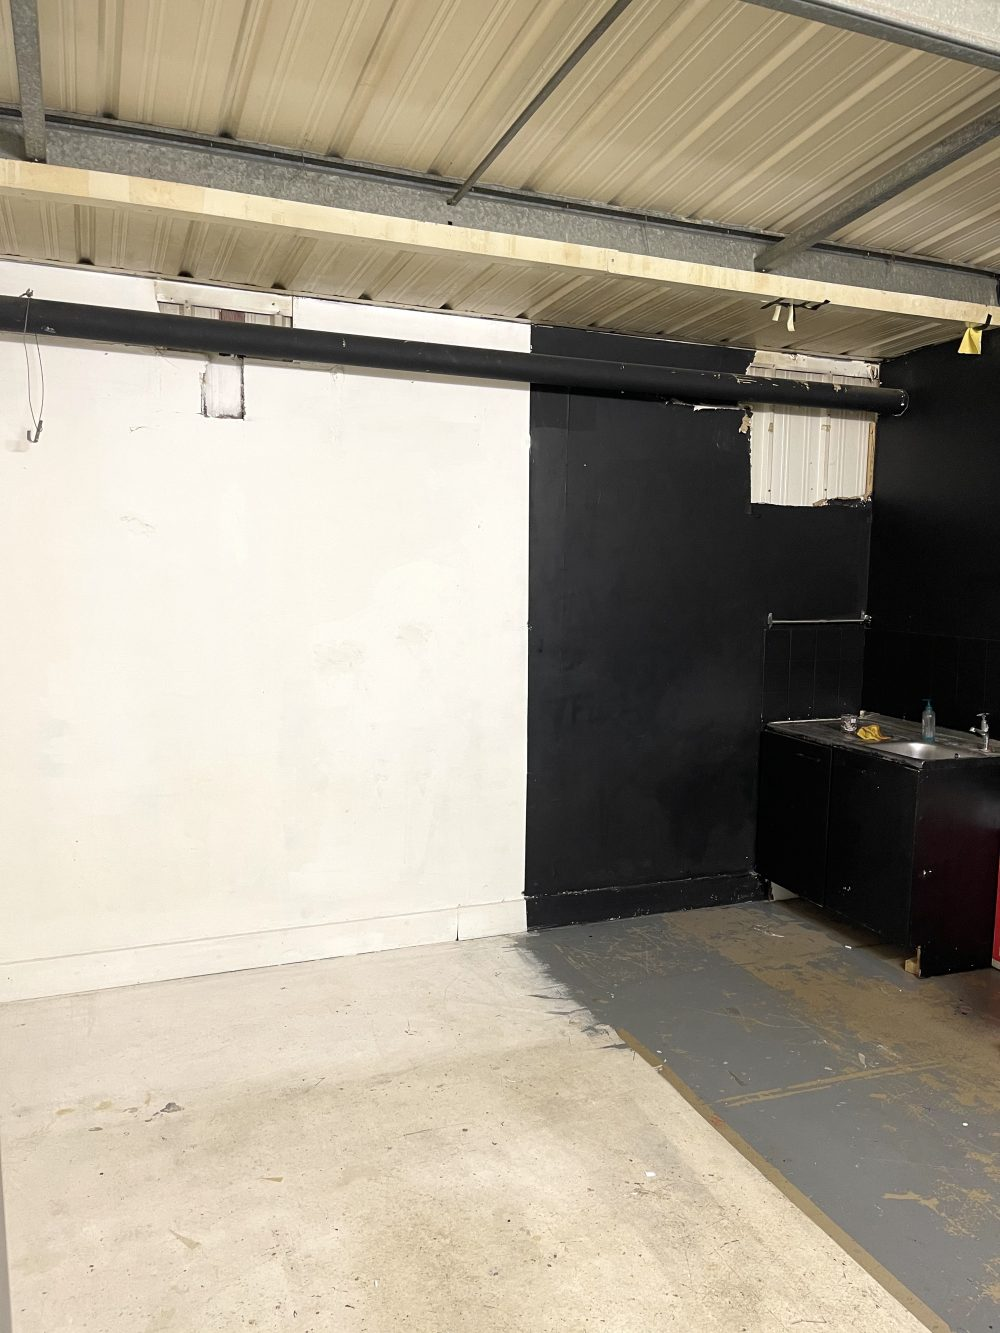 Light indurstrial unit to rent in N16 Stoke Newington Shelford Place PIc9